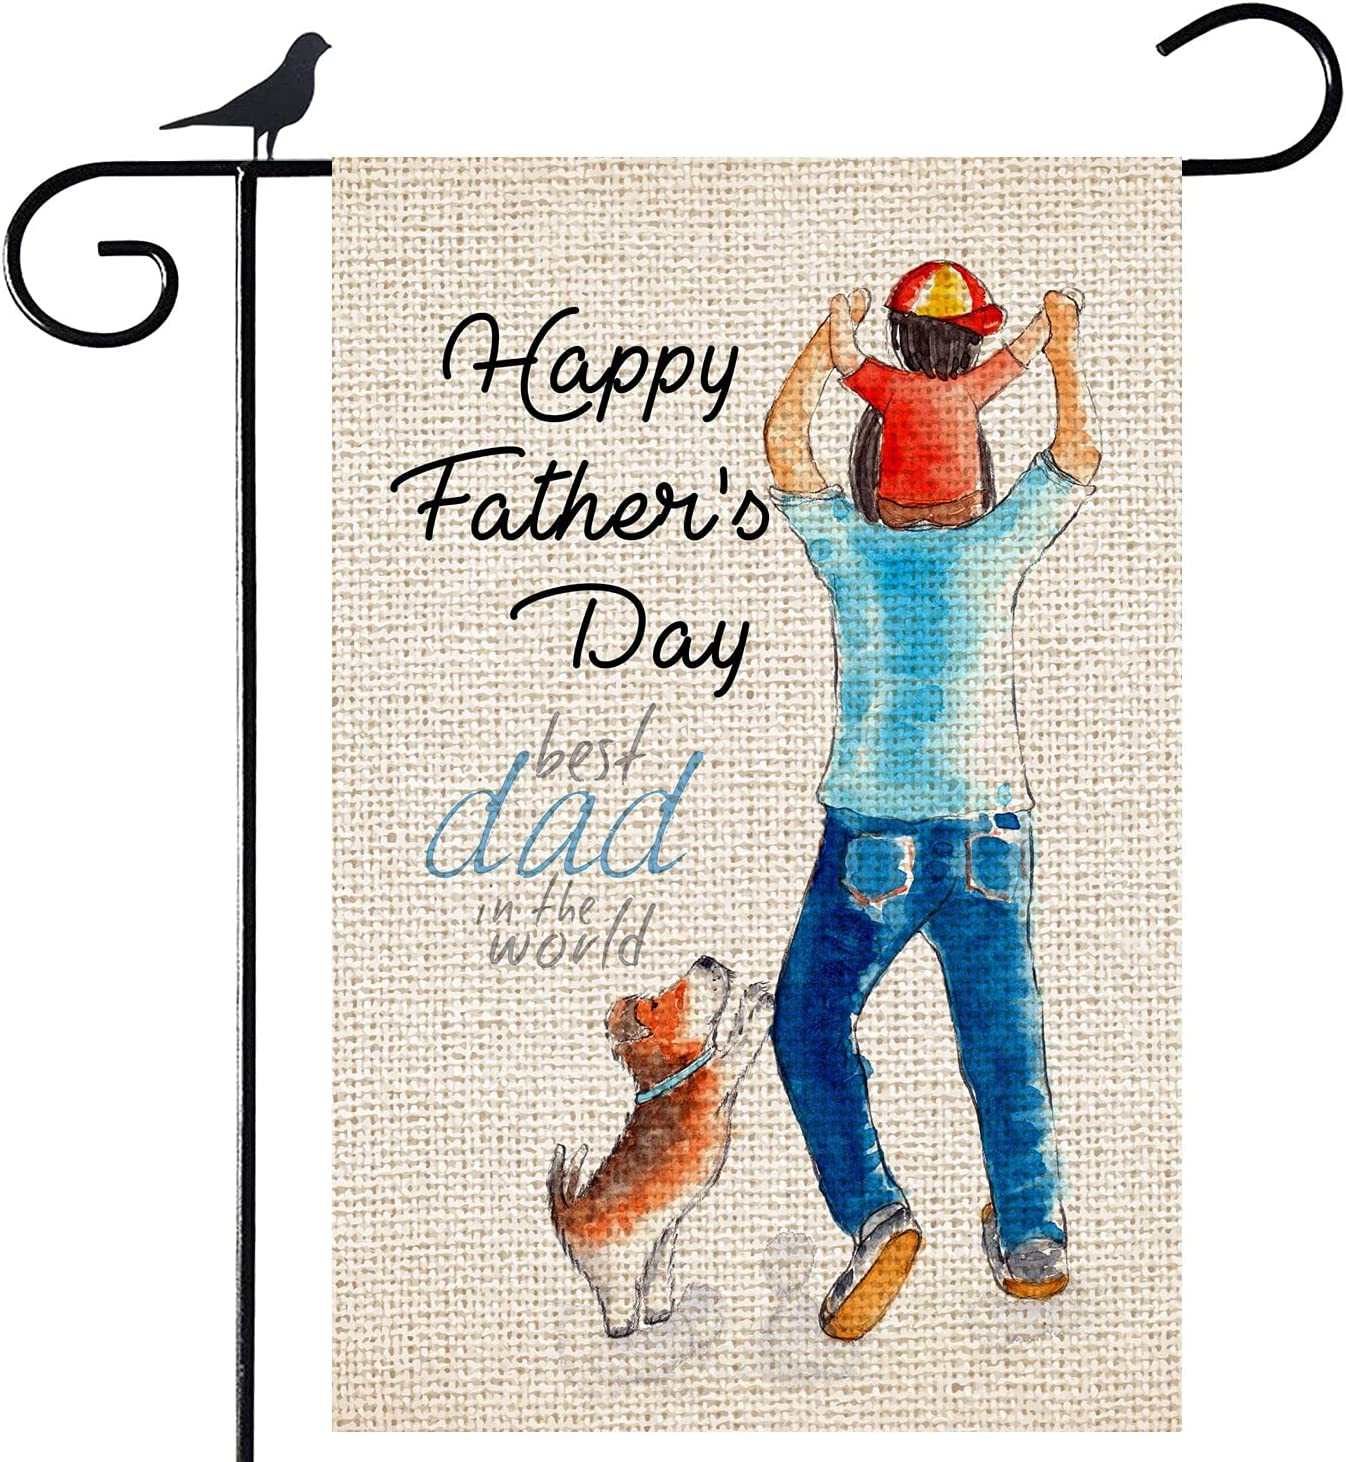 Shmbada Happy Father's Day Burlap Garden Flag, Best Dad in The World Double Sided Vertical Outdoor Decorative for Home Yard Lawn Porch Patio Farmhouse, 12.5 x 18.5 Inch